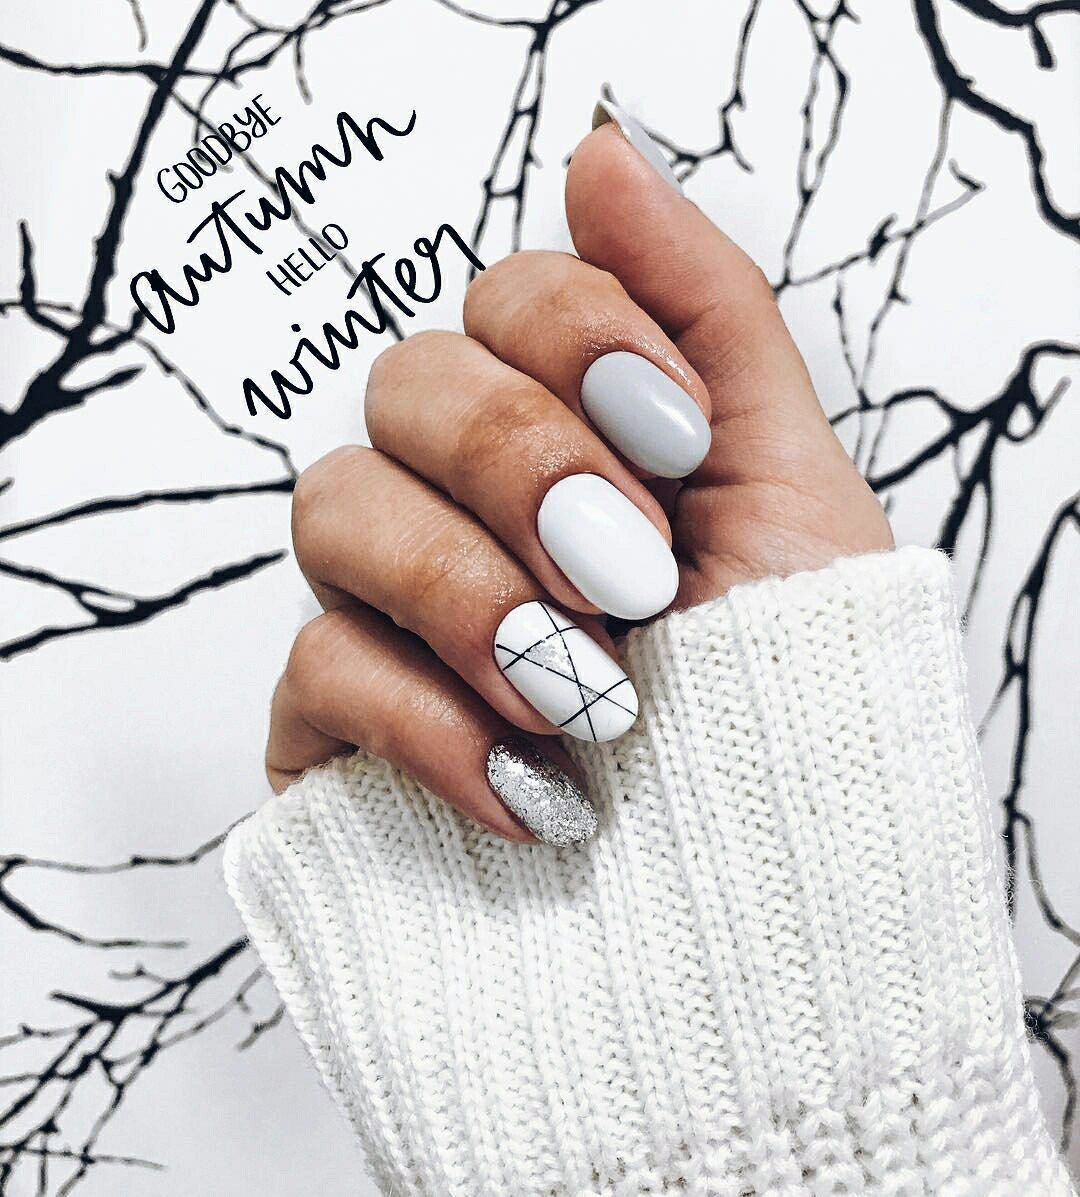 Pin By Vicky Lim On Kormok In 2020 Winter Nails Trendy Nails Nail Designs